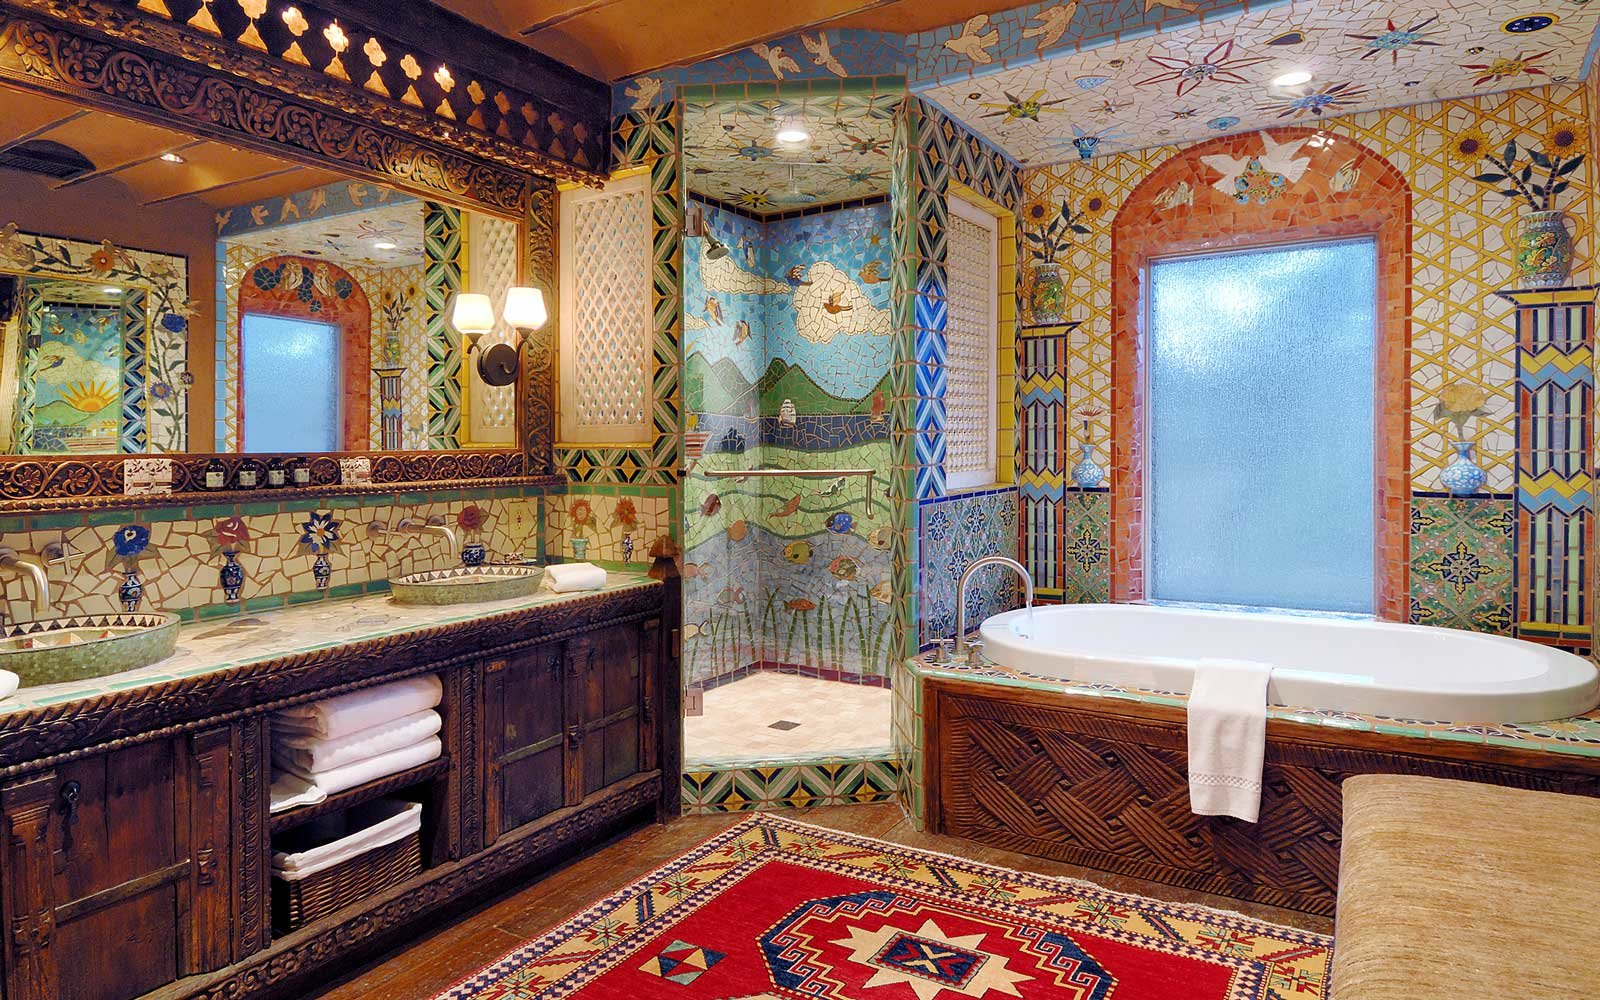 Mosaic tile bathroom at Inn of the Five Graces